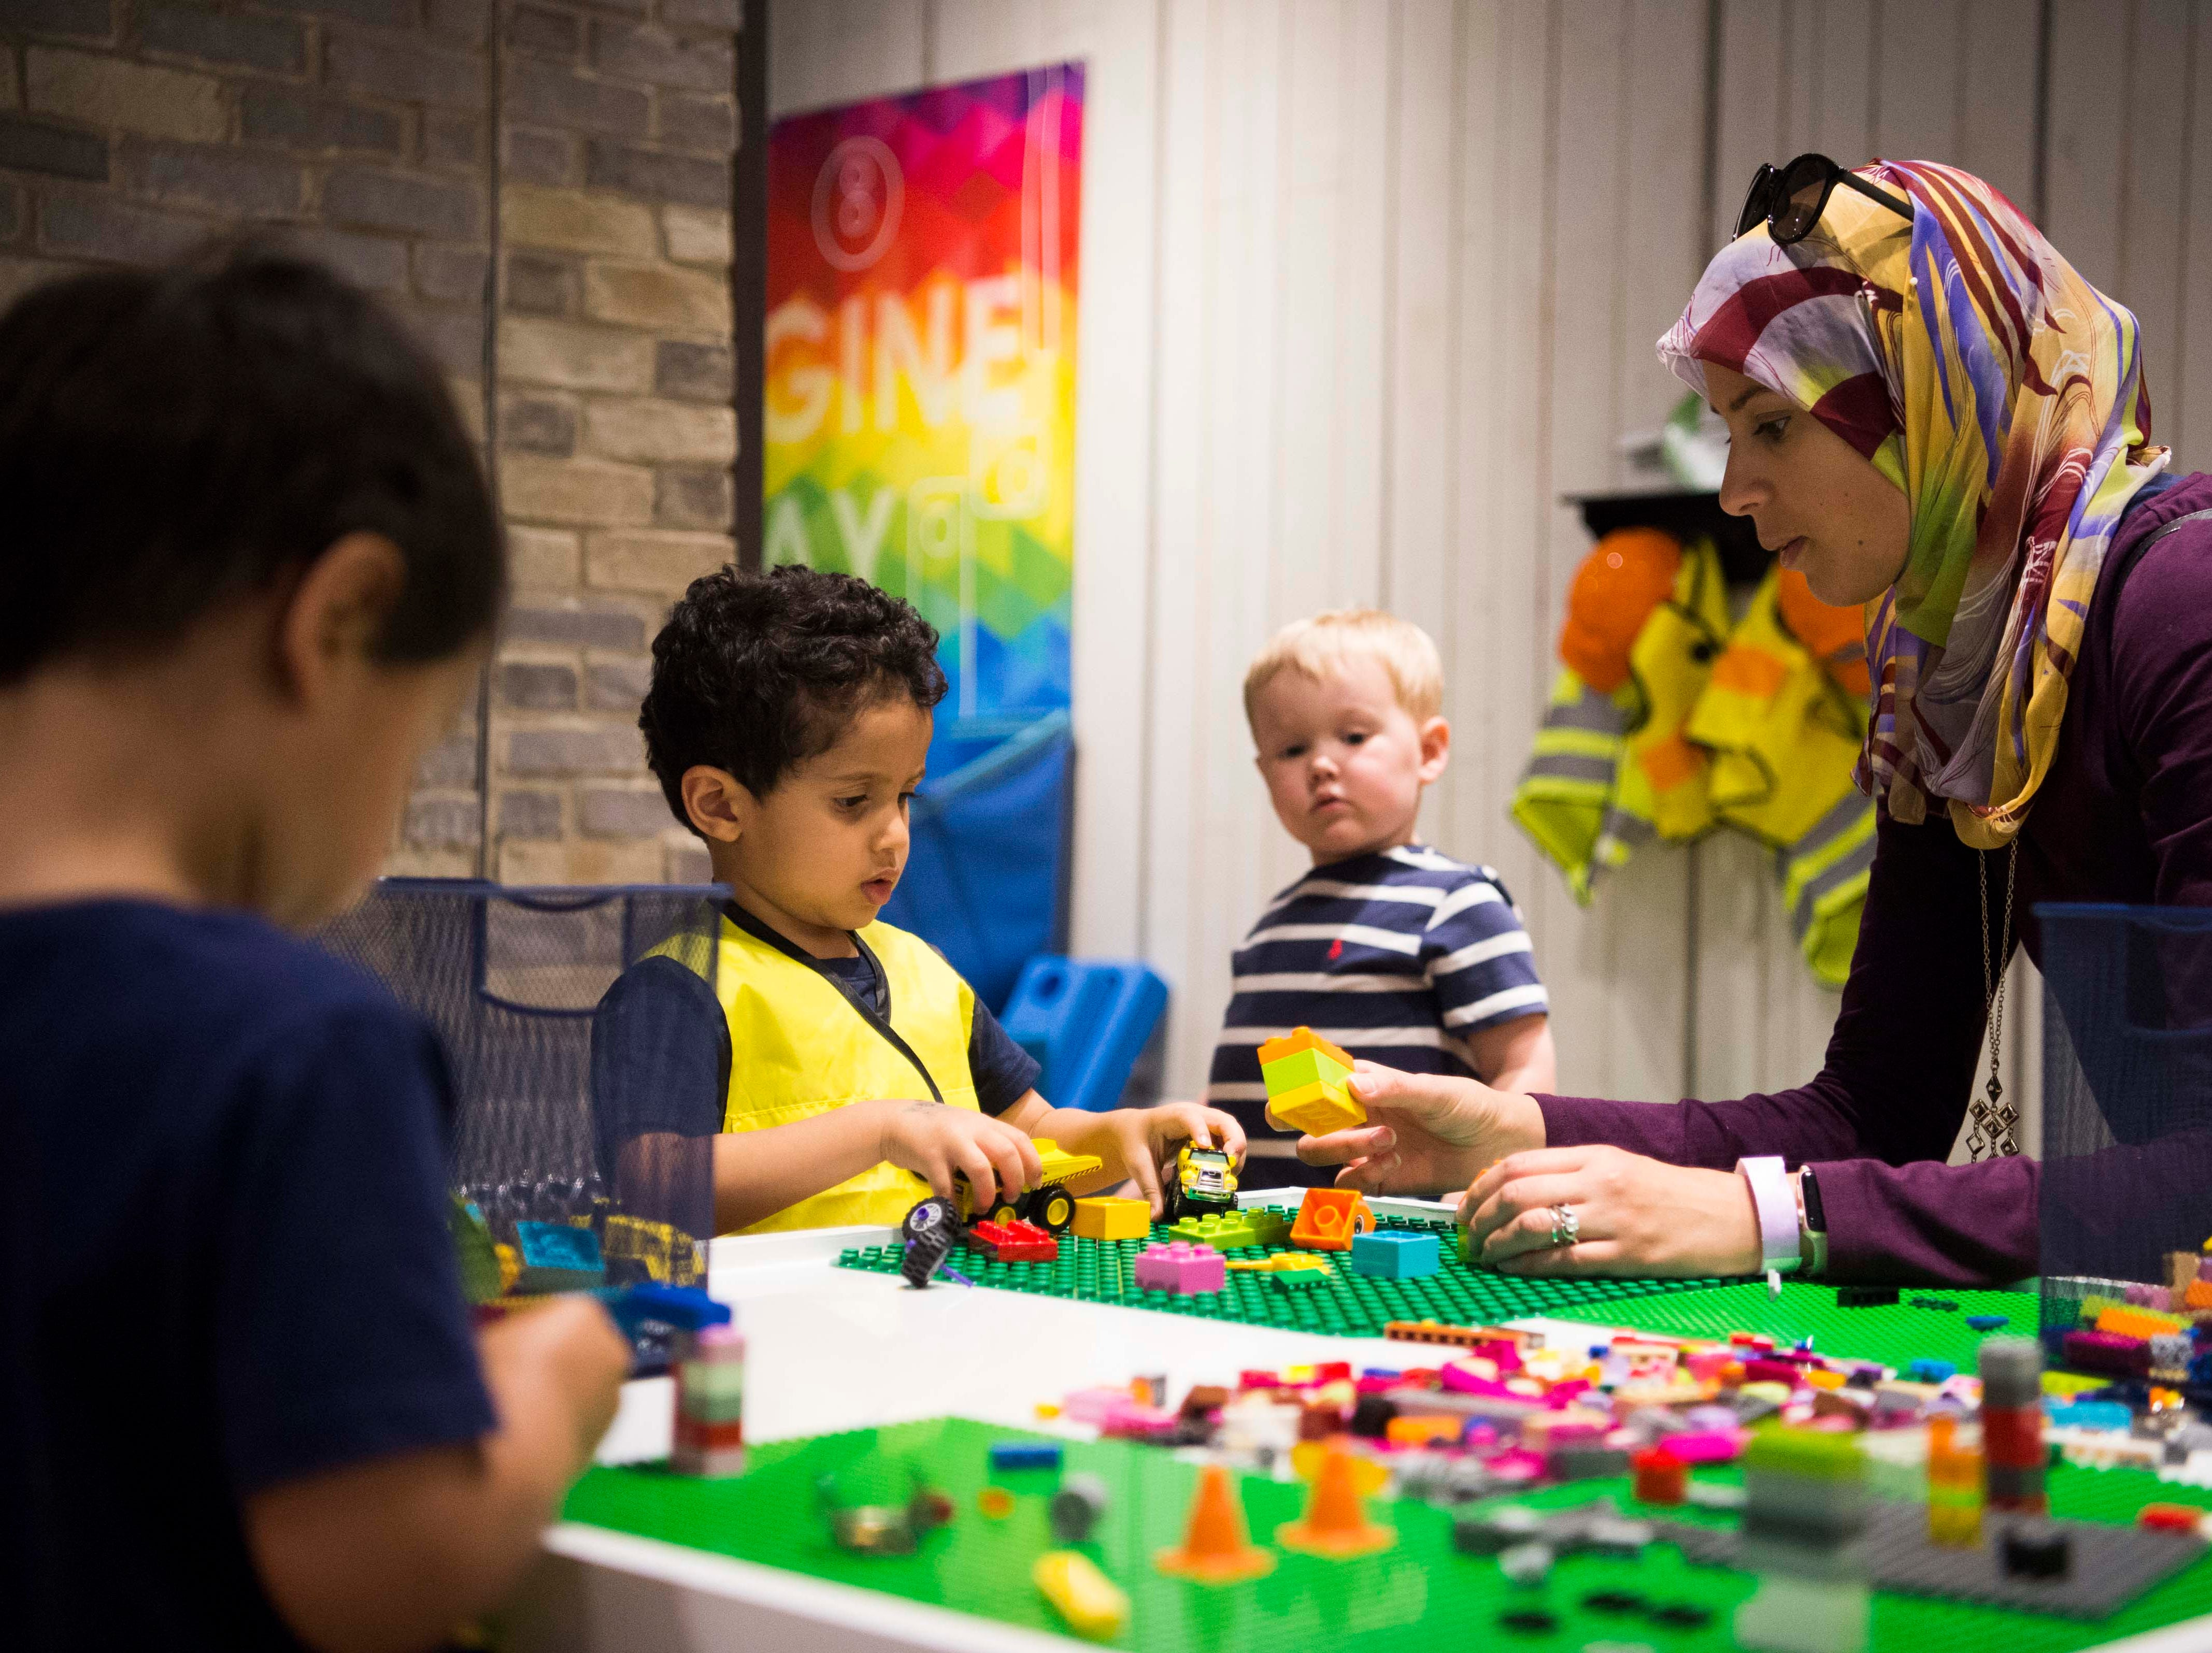 At right Rahma Ismail plays with Amin Alsharif at the new Muse at the Mall at West Town Mall in Knoxville Thursday, April 11, 2019. The Muse offers STEAM (science, technology, engineering, art, math) based play for Knoxville families, and will open to the public on Saturday April 13.